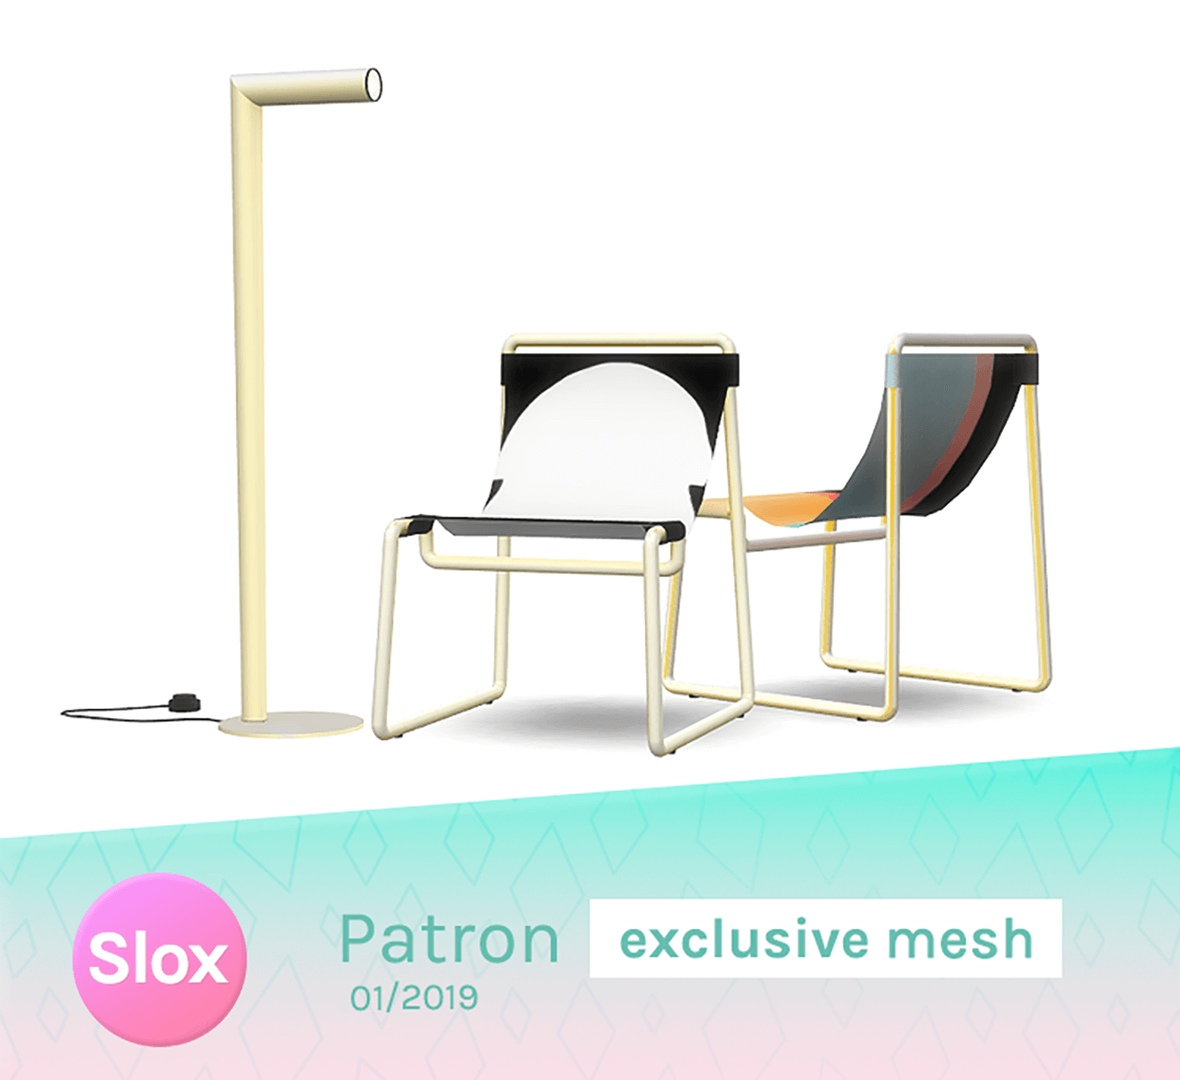 Patron Exclusive mesh 2019 01 by Slox